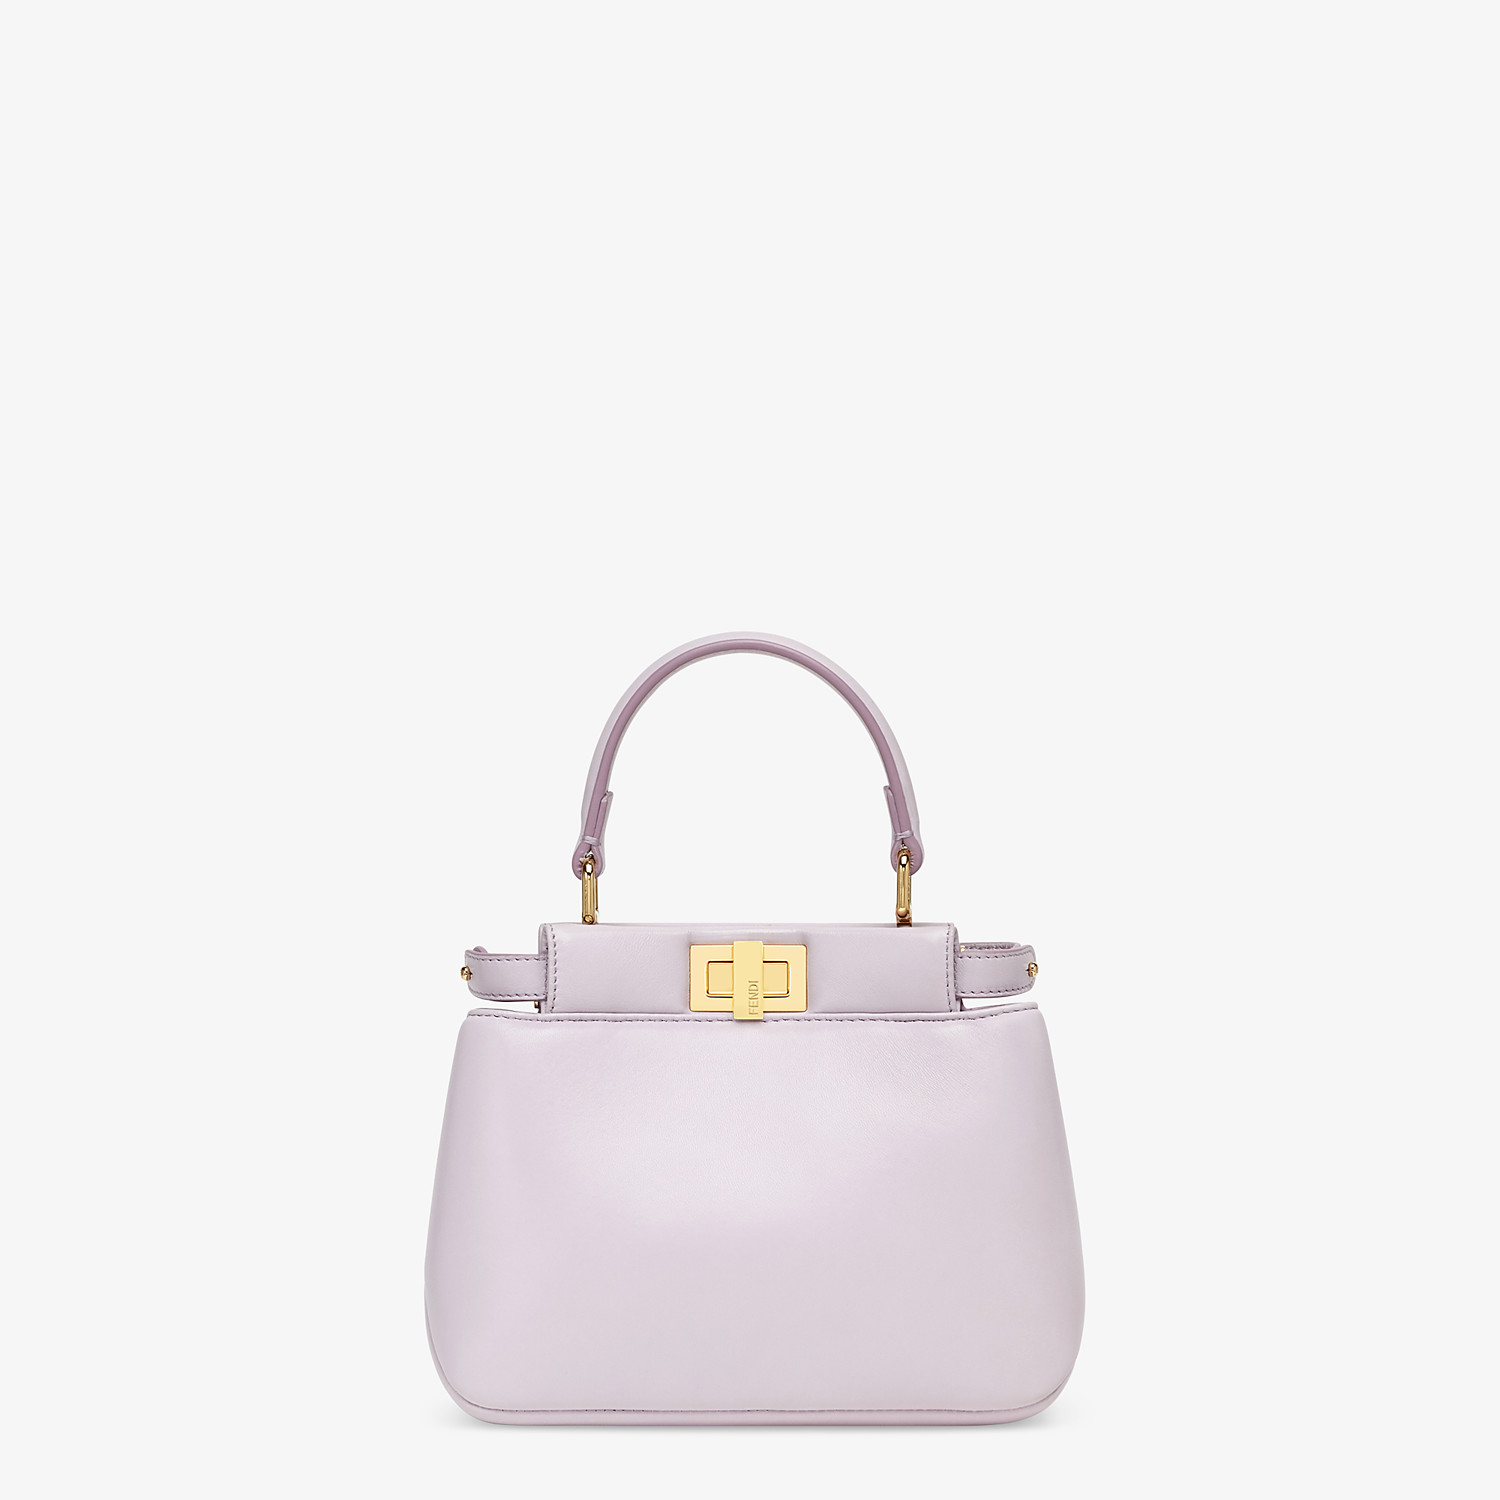 FENDI PEEKABOO ICONIC XS - Lilac nappa leather bag - view 1 detail